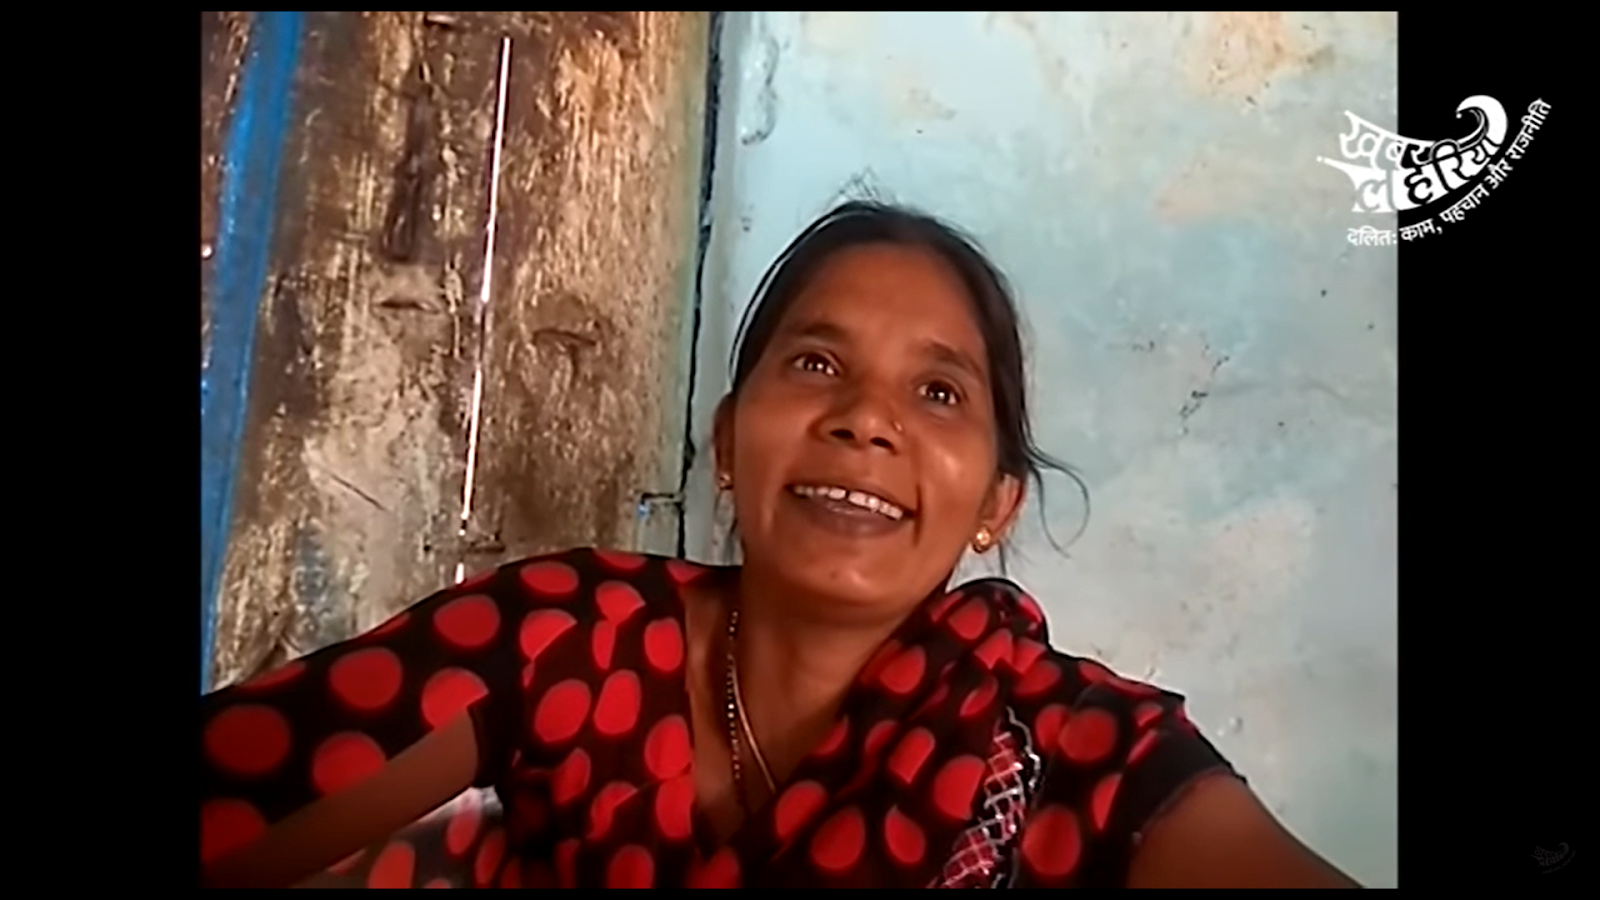 Prabhavati, who works in leather in Mau, Chitrakoot laughed at the idea of telling her relatives about her profession because of the casteist stigma against working with dead animals. She would have trouble finding a match for her children, she said in 2018.